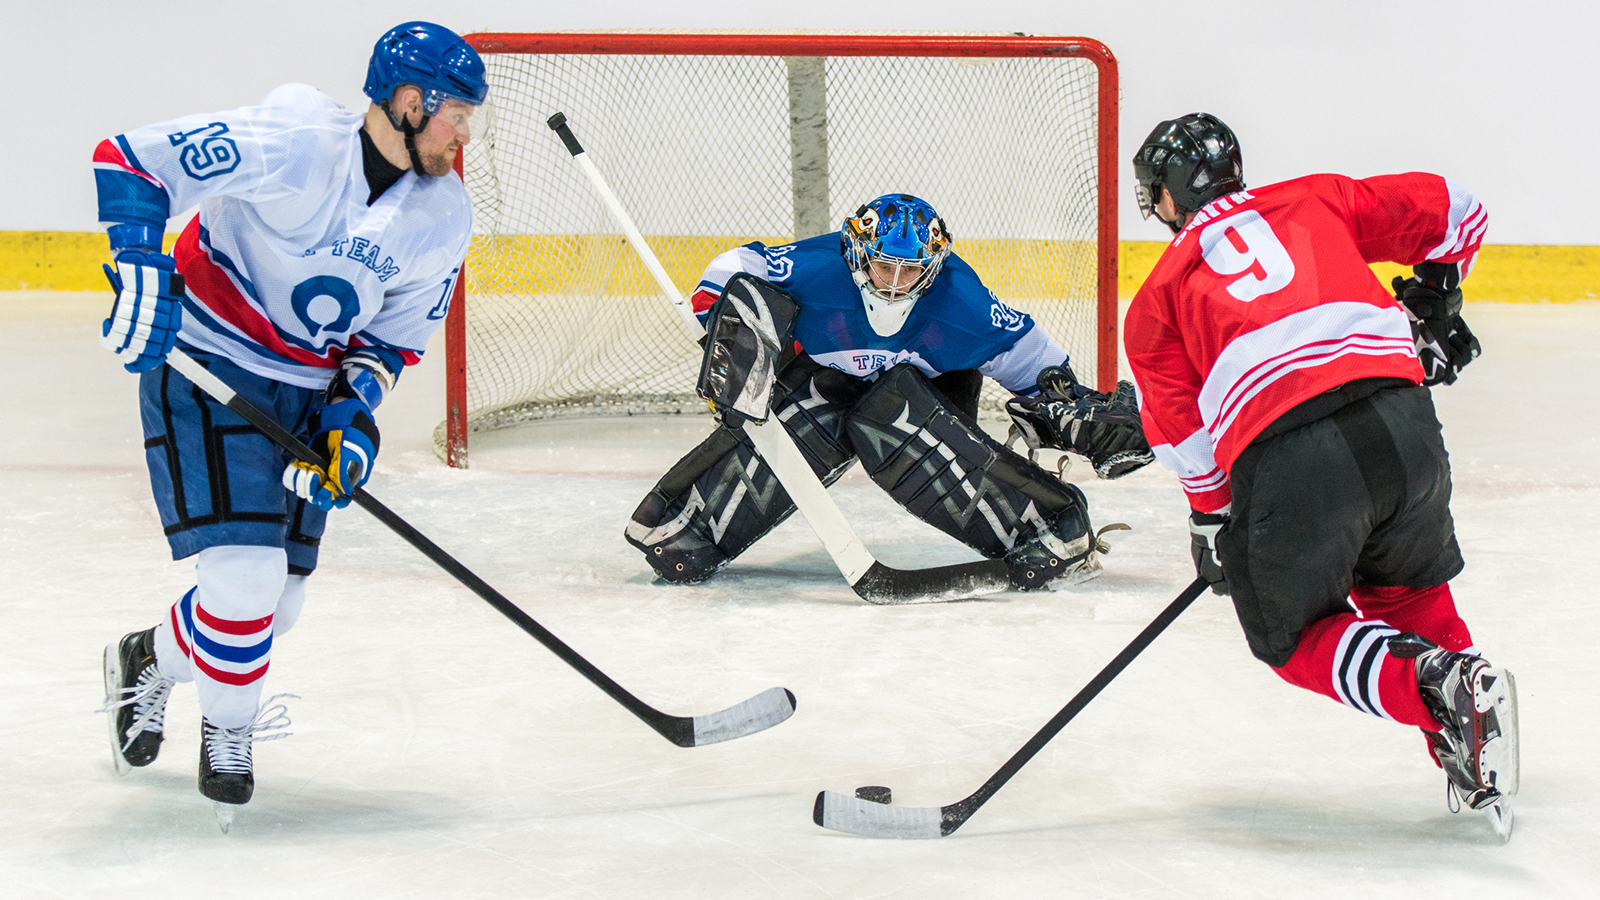 Hockey Players: 4 Secrets to Shoot More Accurately